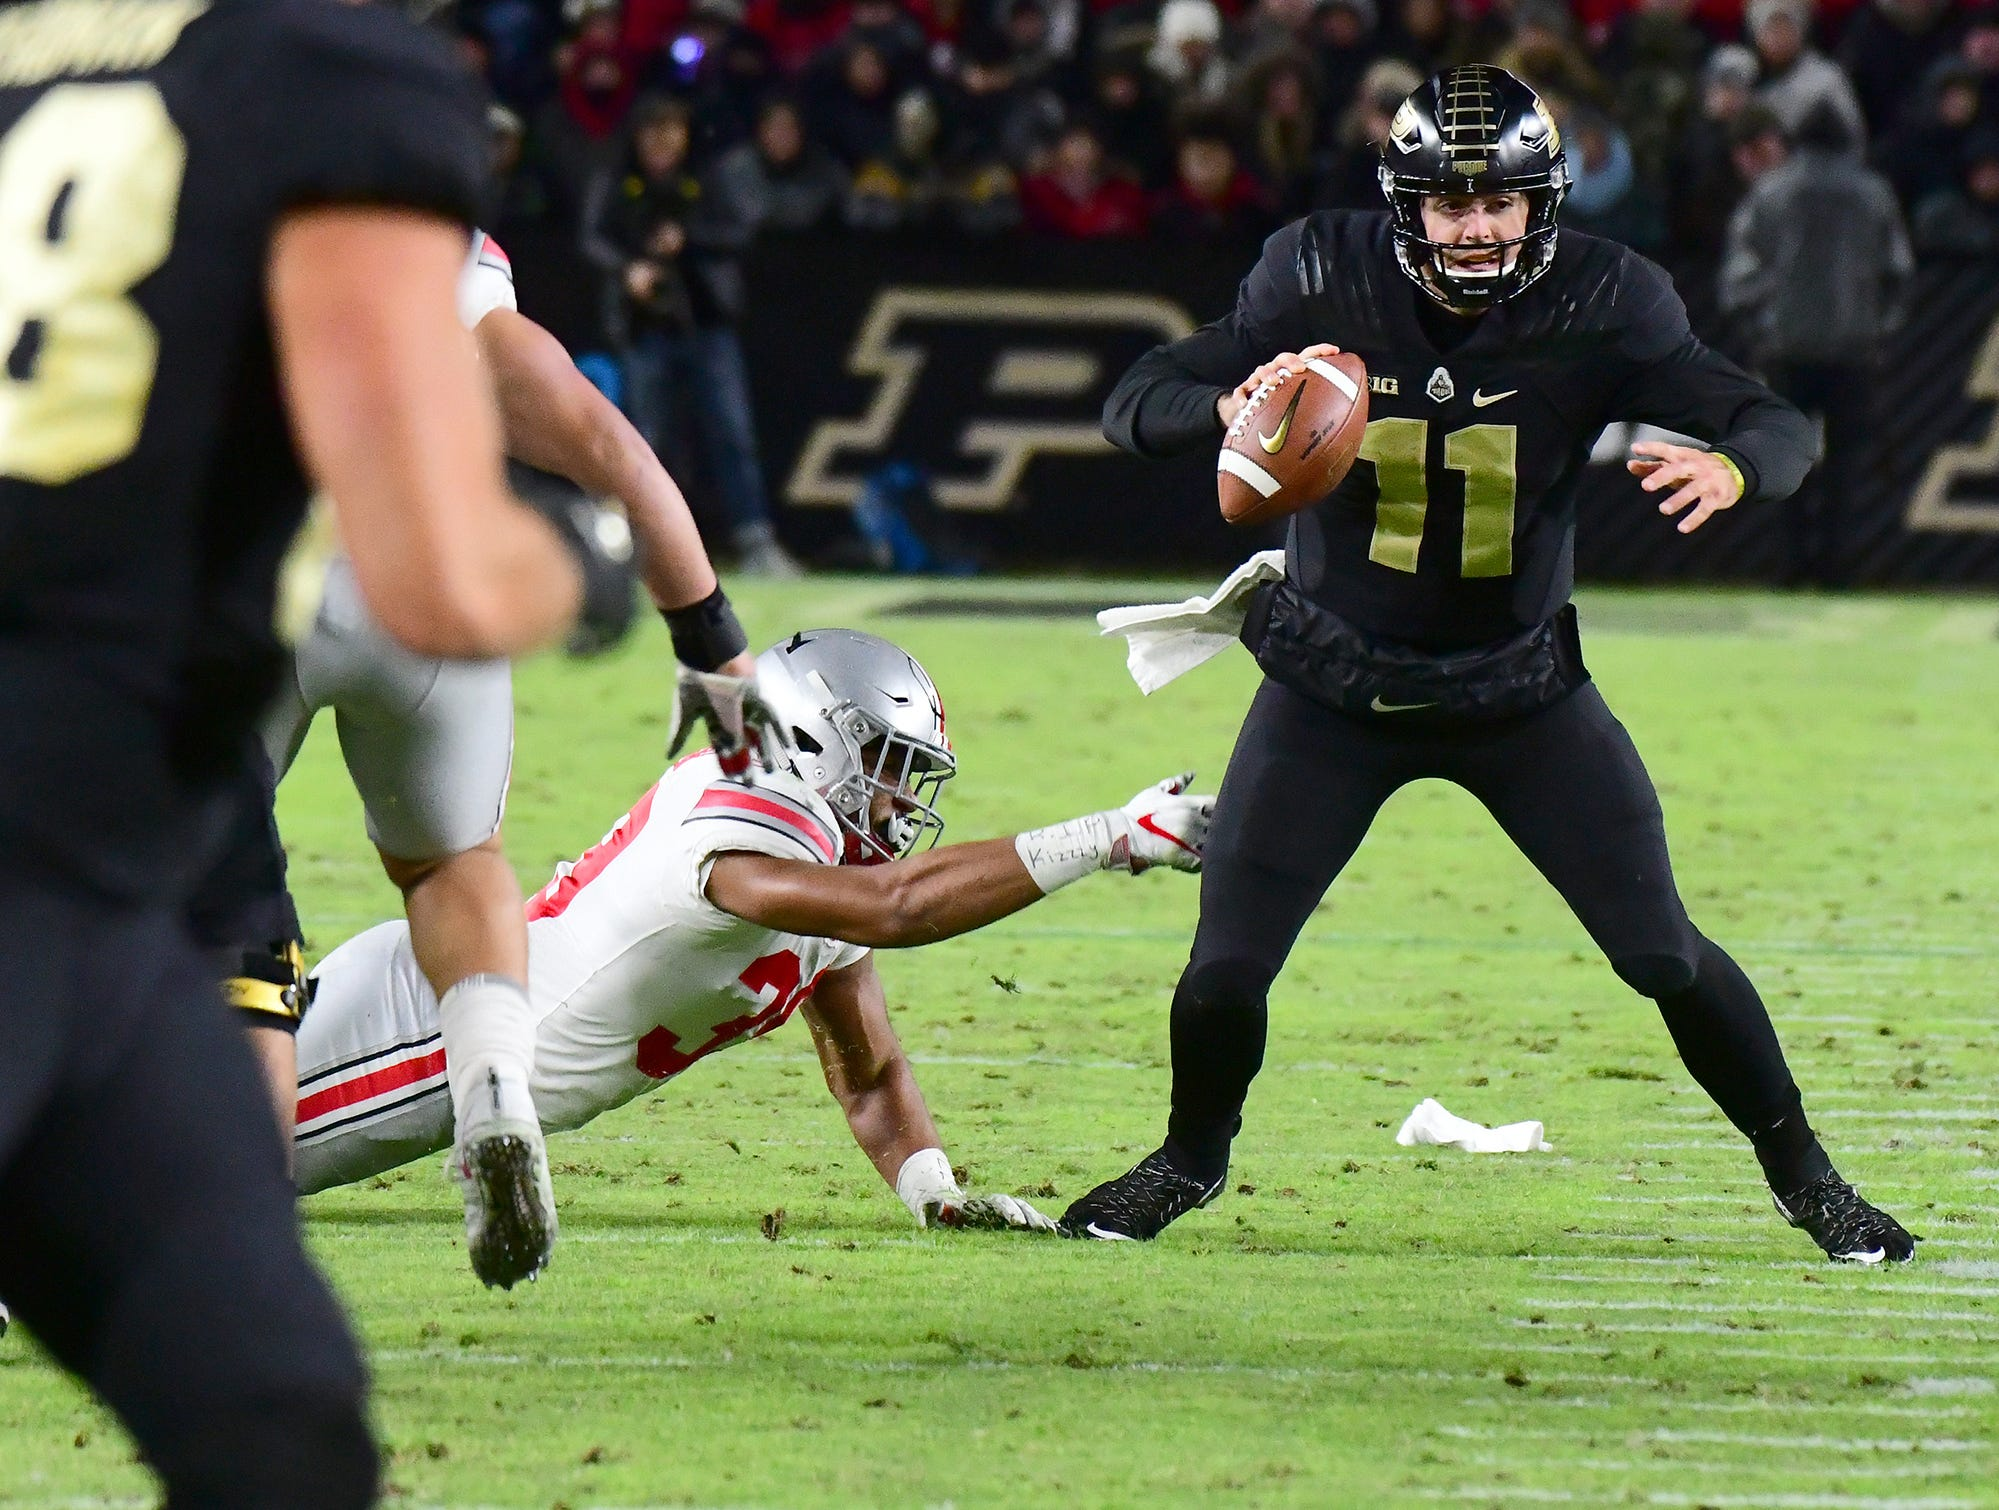 Purdue's David Blough as Purdue upsets Ohio State in West Lafayette on Saturday October 20, 2018.